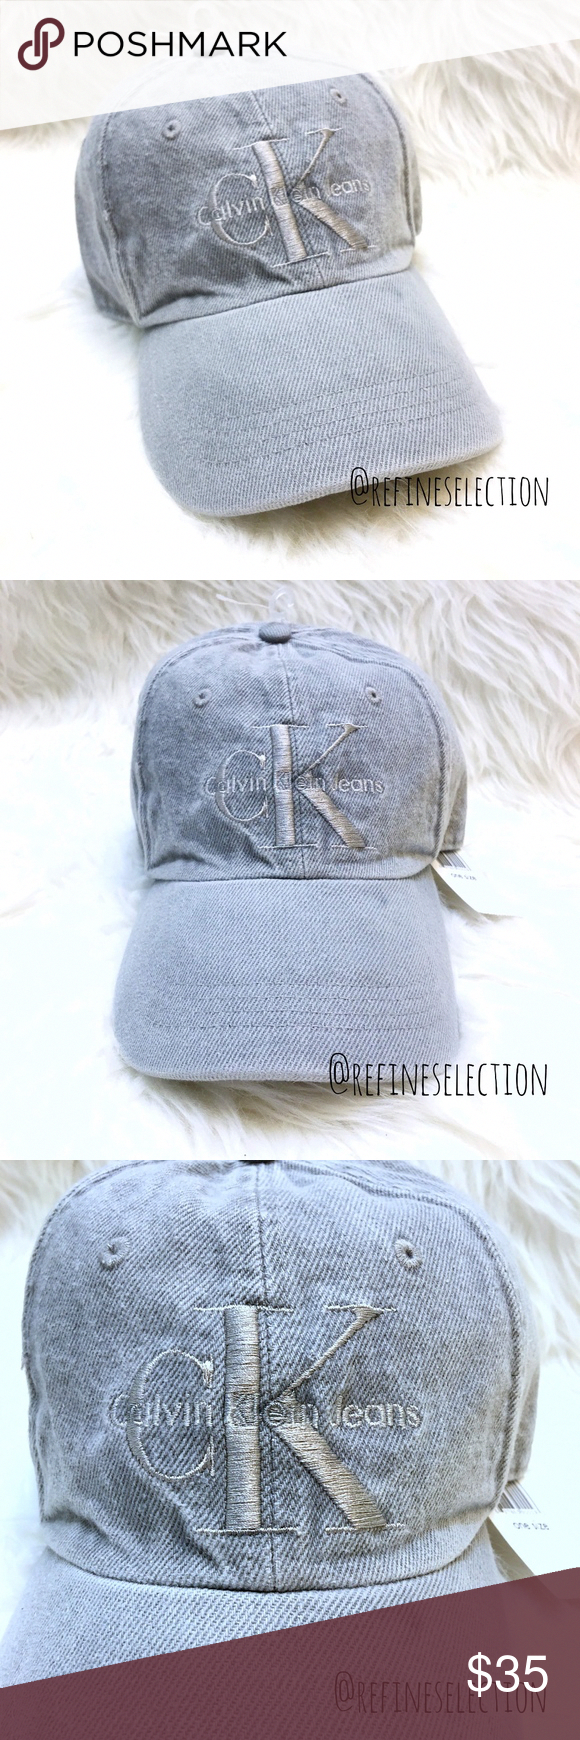 e2102ad8d02 Calvin Klein Grey Embroidered Denim Dad Hat Cap Brand new with tags ...